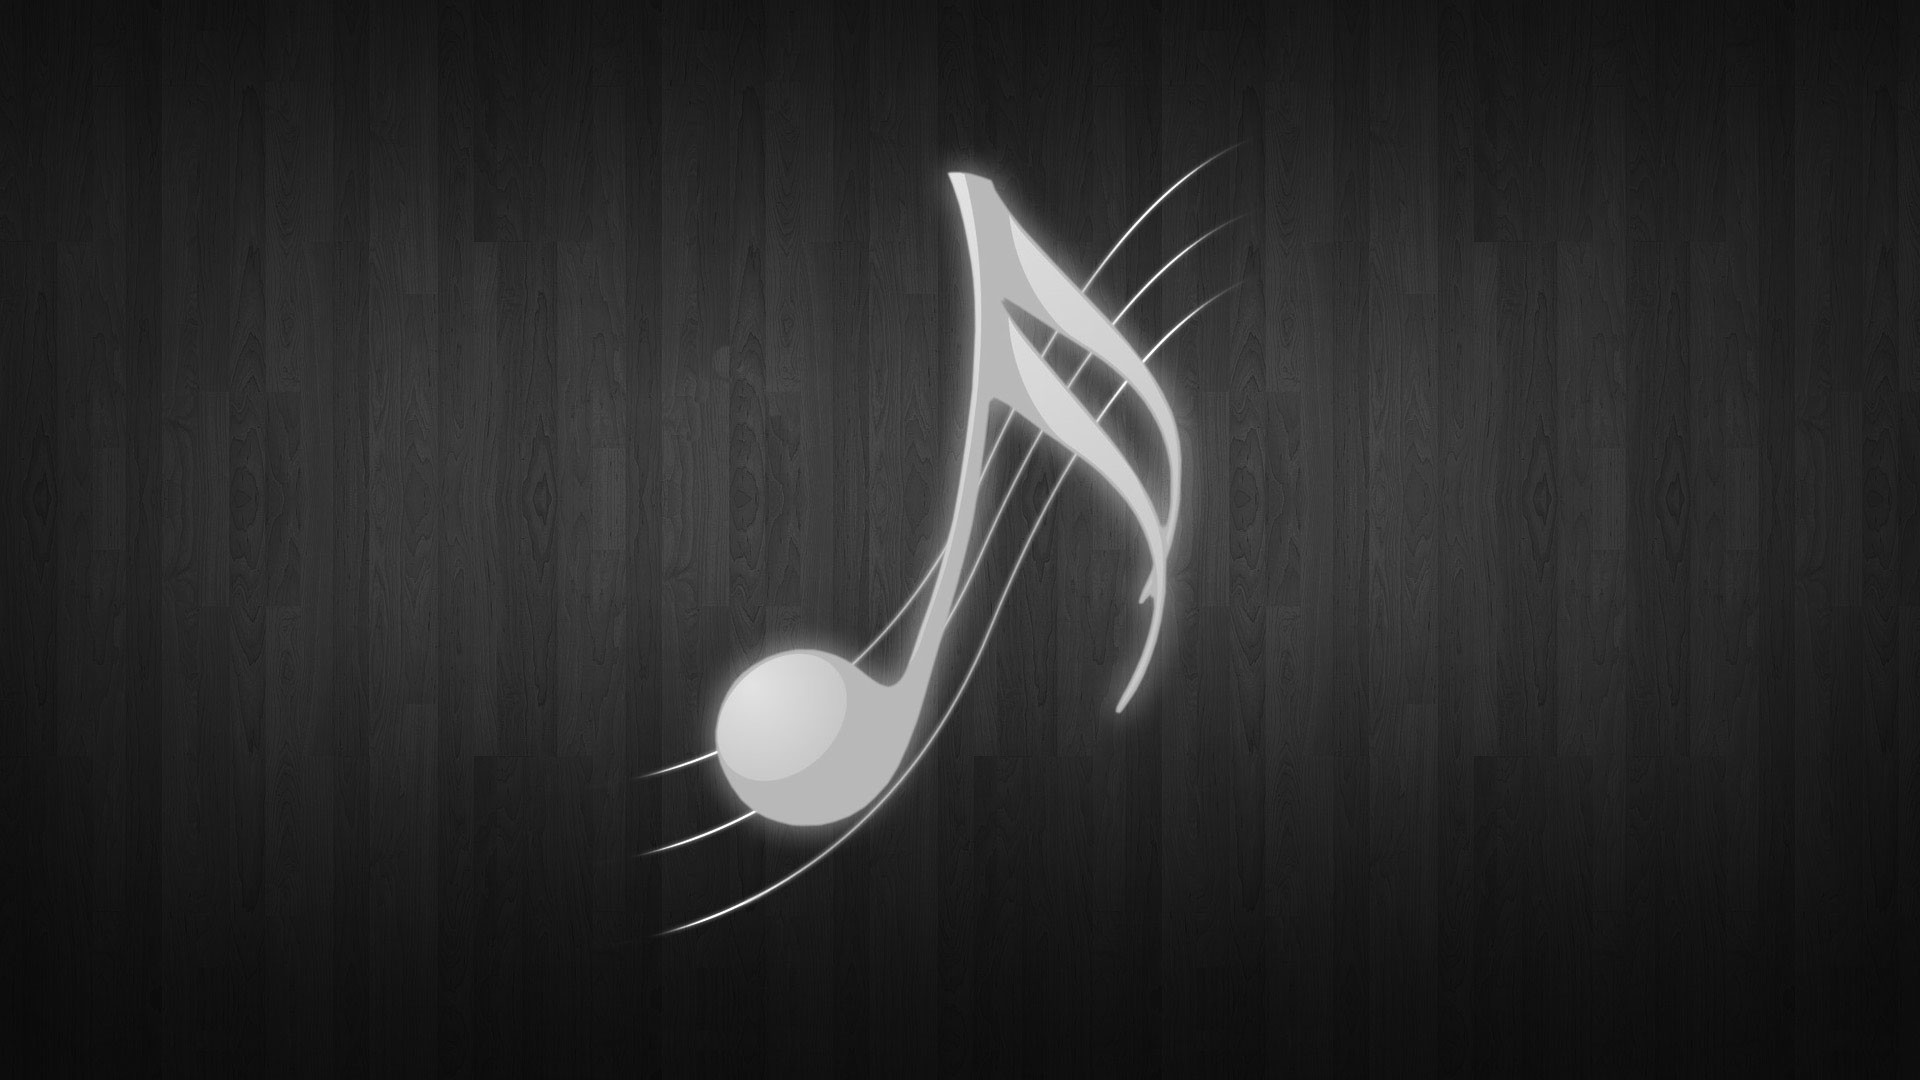 Music HD Wallpapers 1080p (83+ images) Music Icon Images Hd